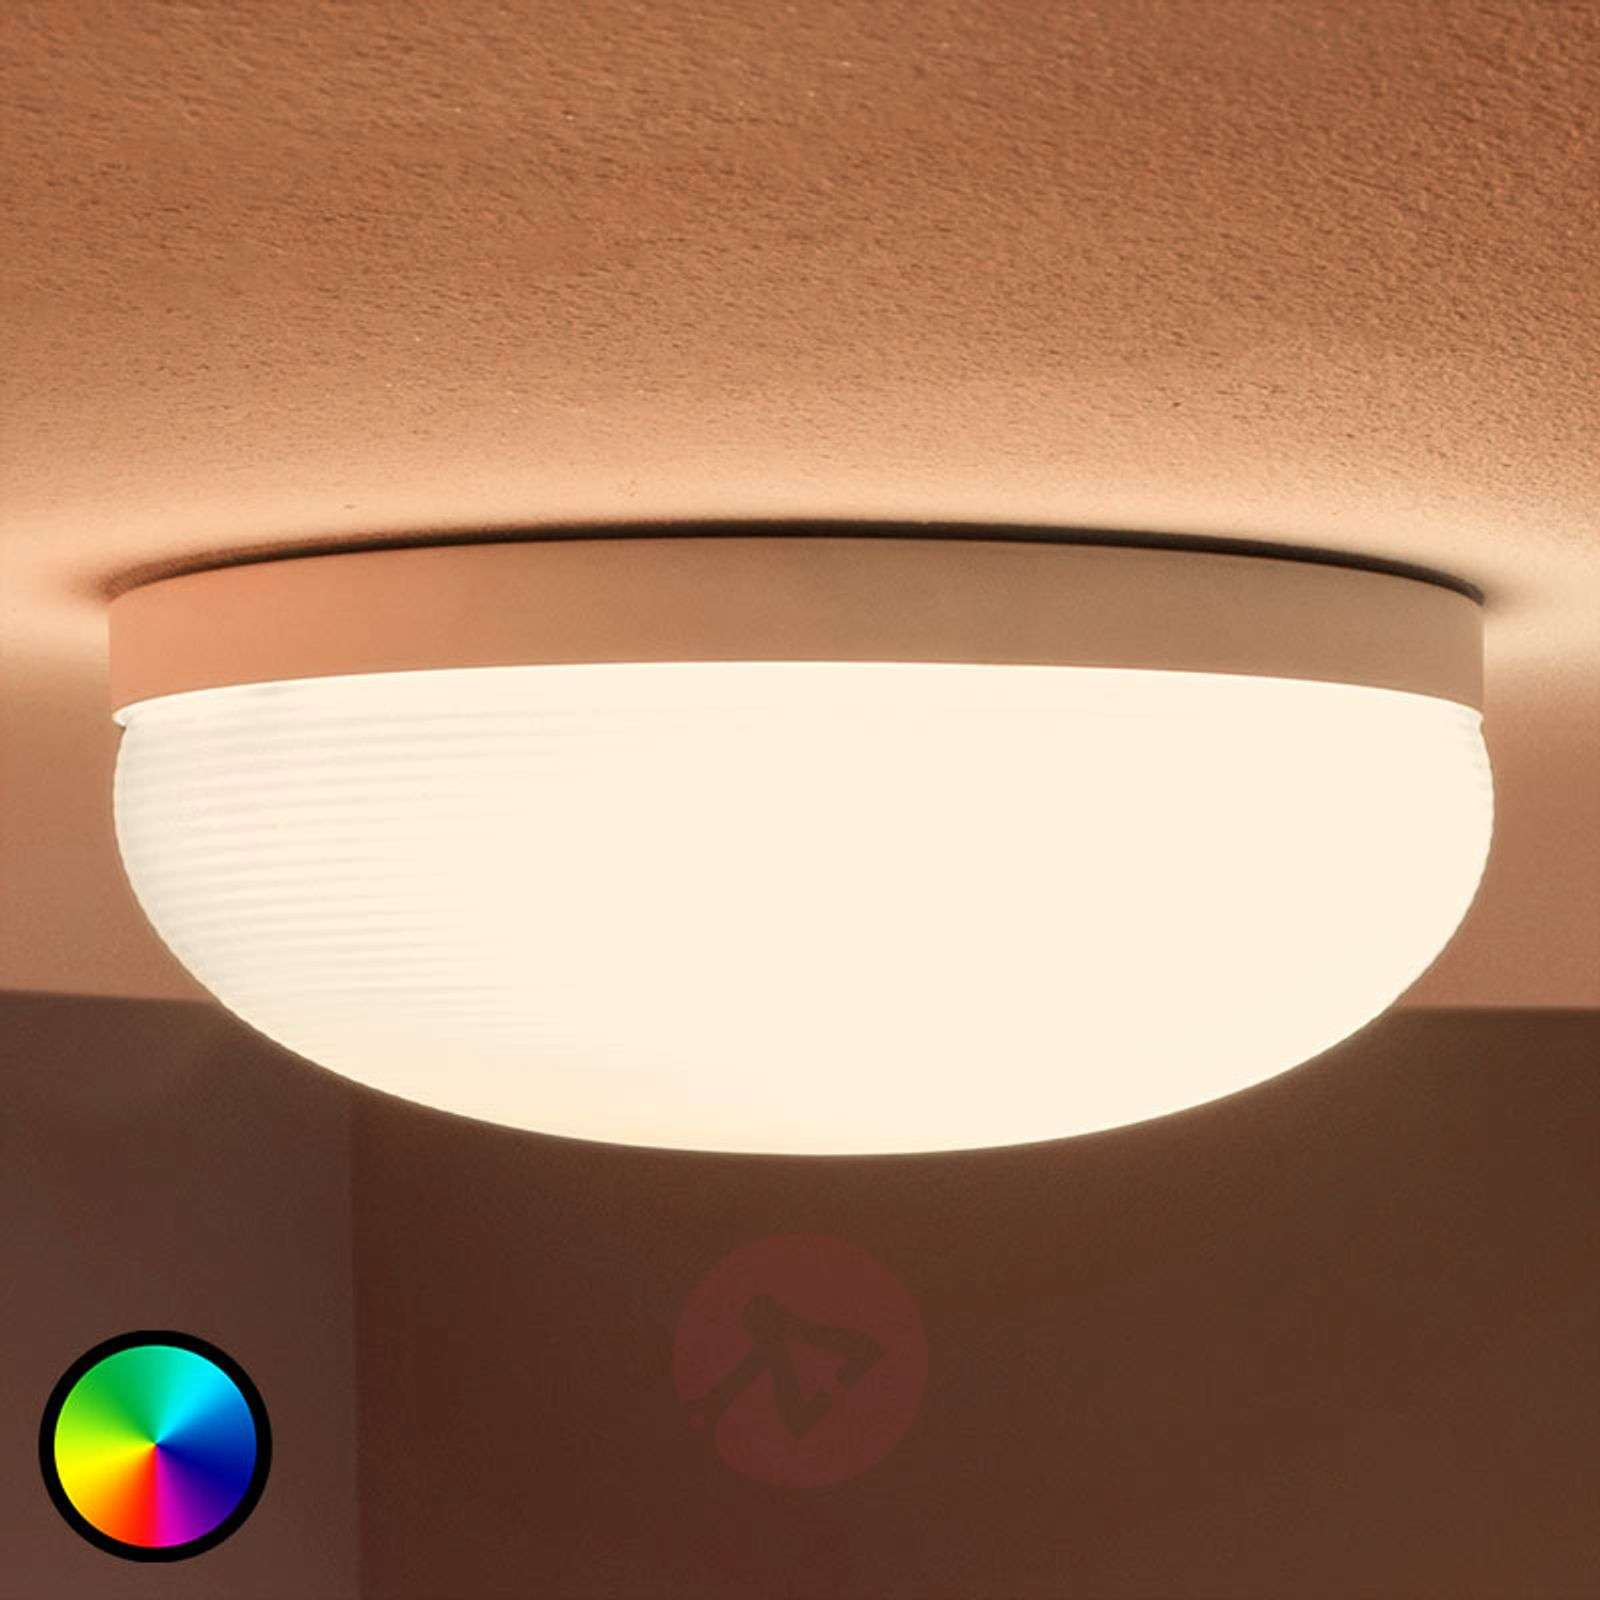 Philips Hue Flourish lampa sufitowa LED